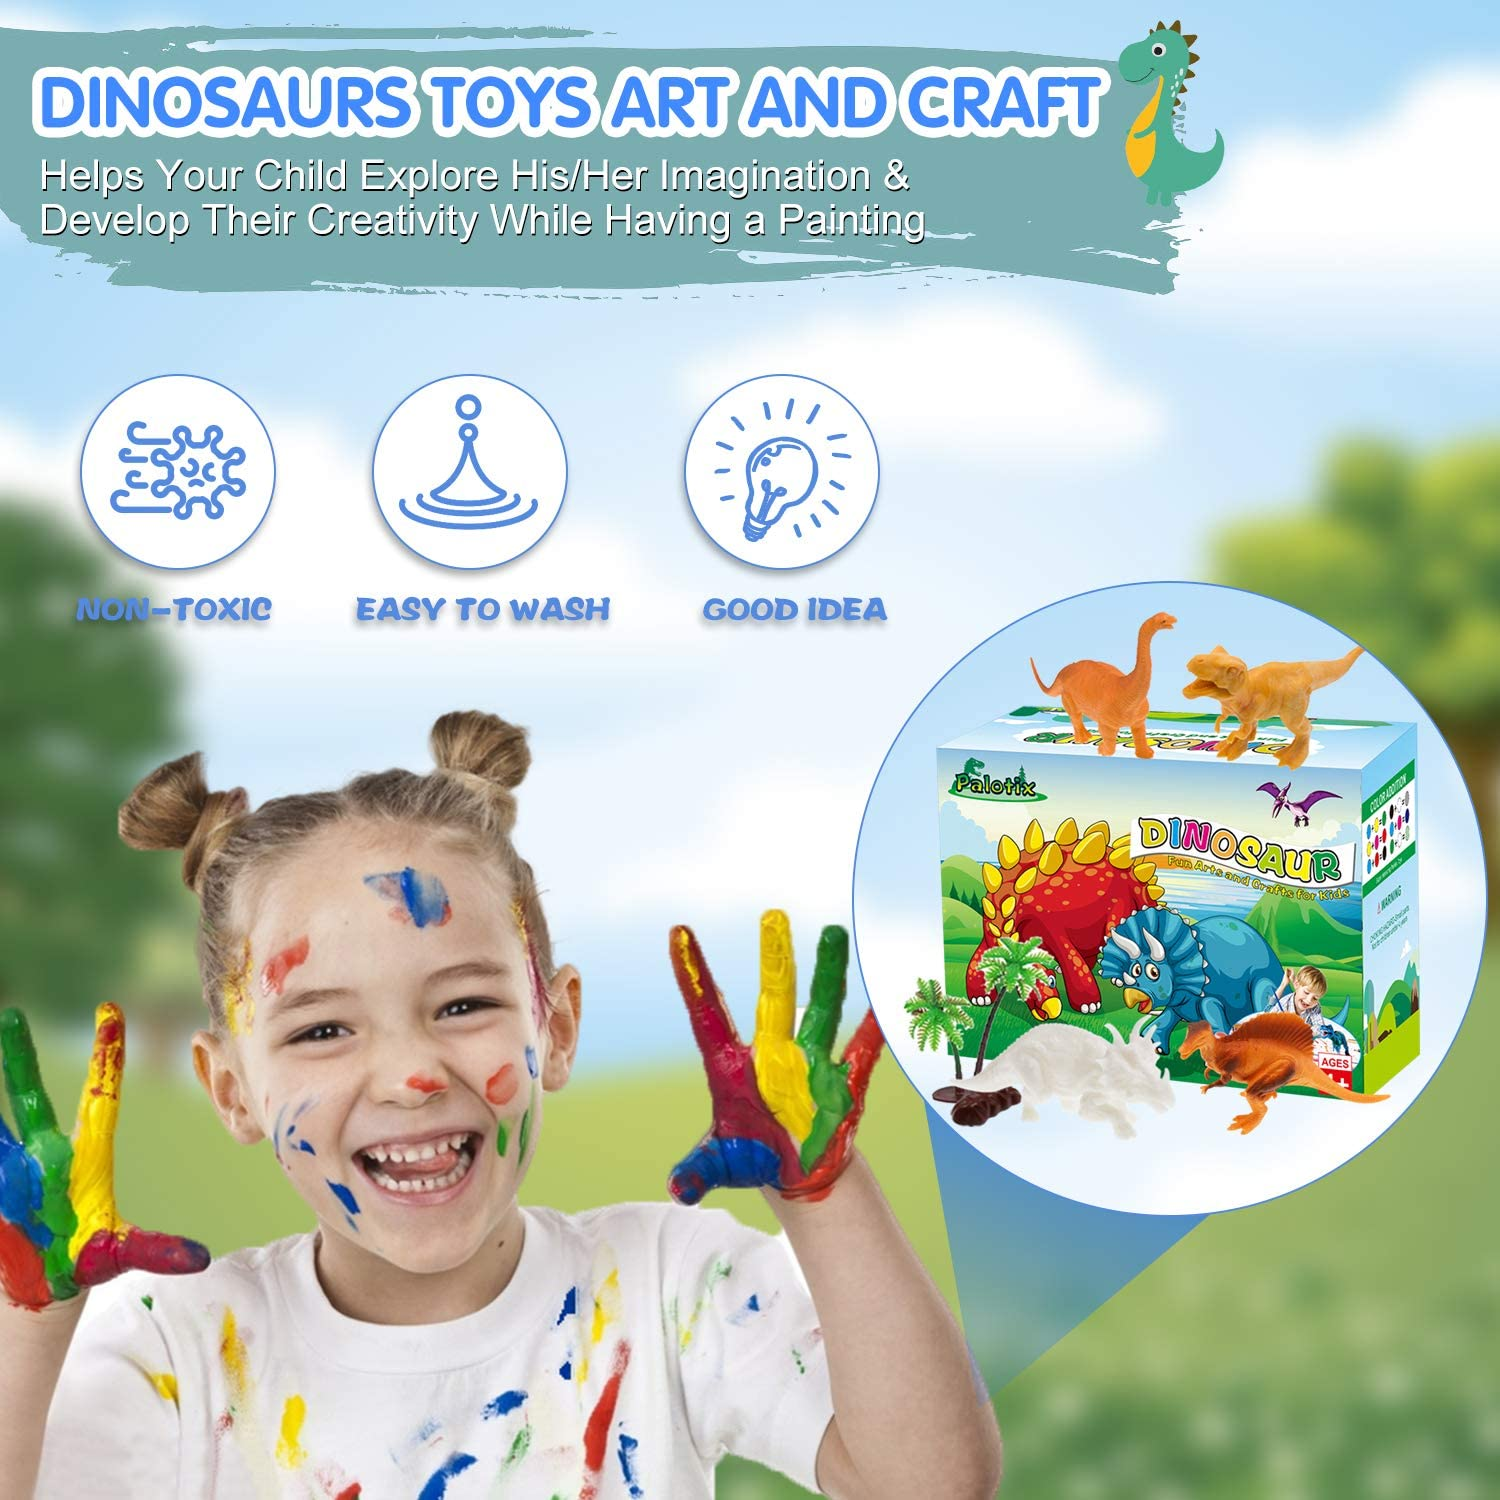 6 Different Dinosaurs /& Play Mat /& 2 Dinosaur Eggs /& 2 Trees /& 2 Rocks Gifts Toys Art and Crafts for Boys Girls Age 4 5 6 7 8 9 Years Old Arts and Crafts for Kids Painting Kit